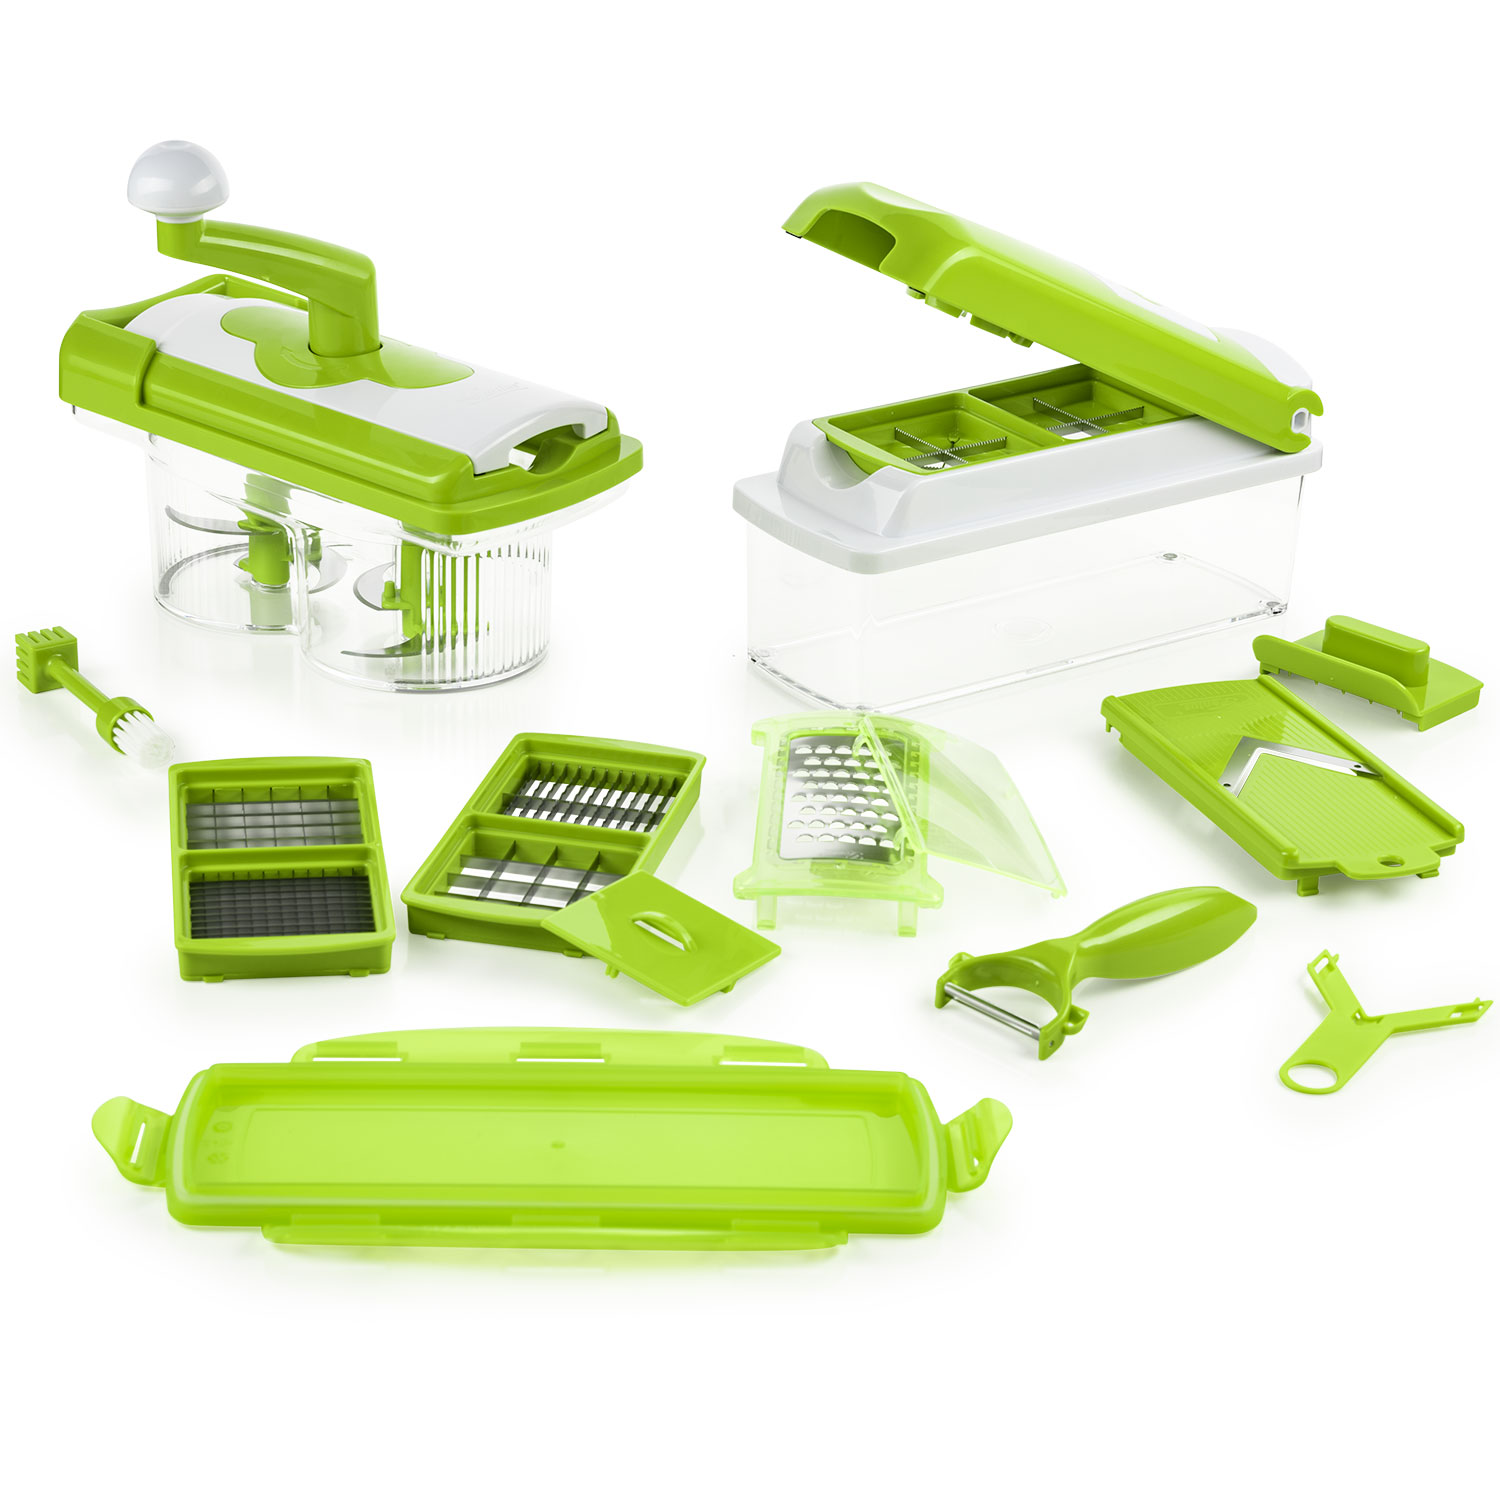 nicer dicer plus set 21tlg nicer dicer plus nicer dicer schneidger te genius online shop. Black Bedroom Furniture Sets. Home Design Ideas